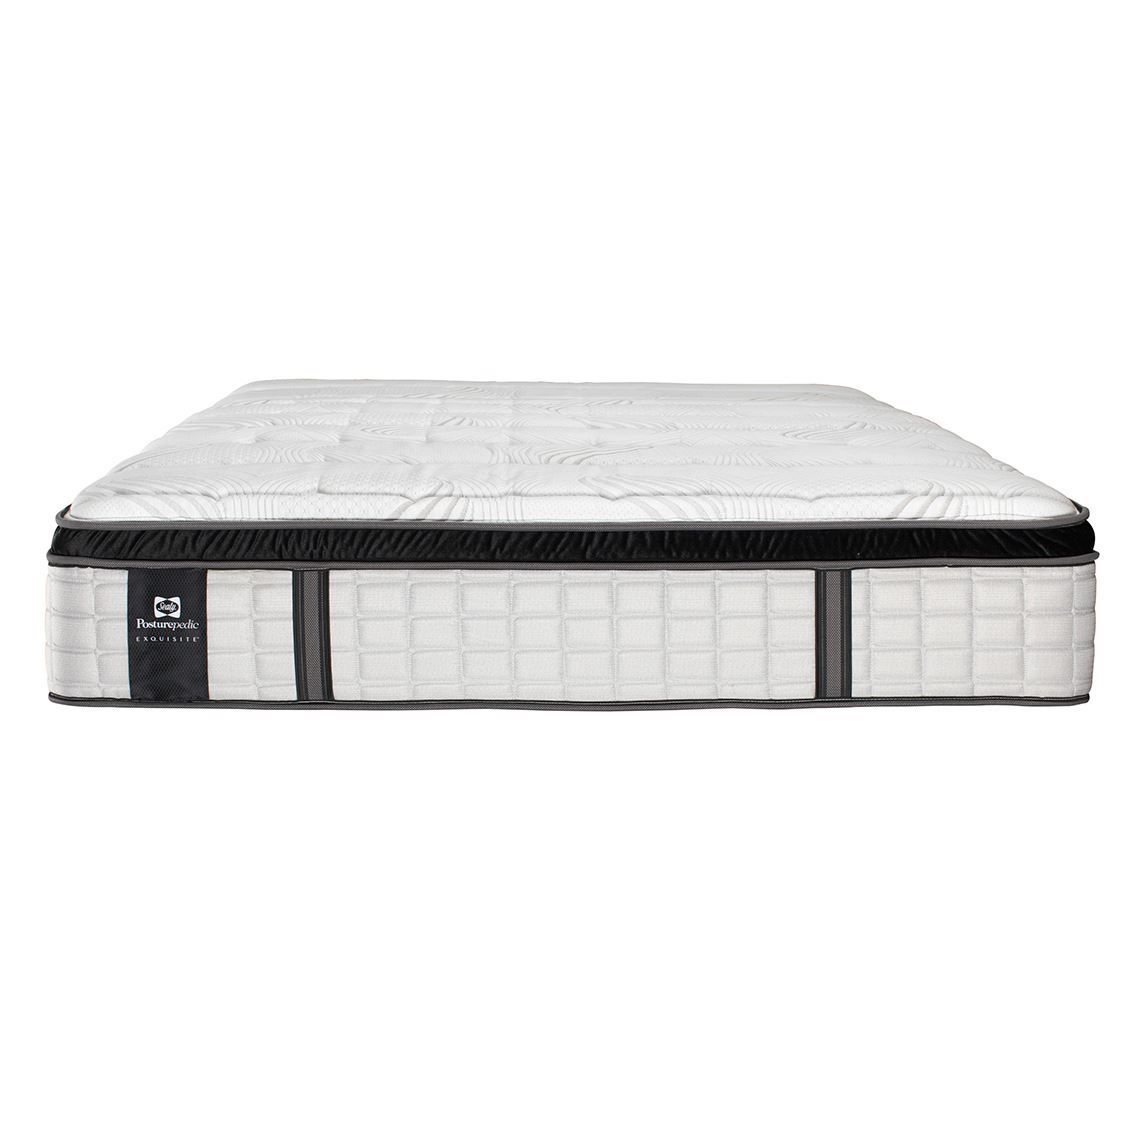 Sealy Jackman Single Plush Mattress Posturepedic Exquisite Mattress Best Mattress Plush